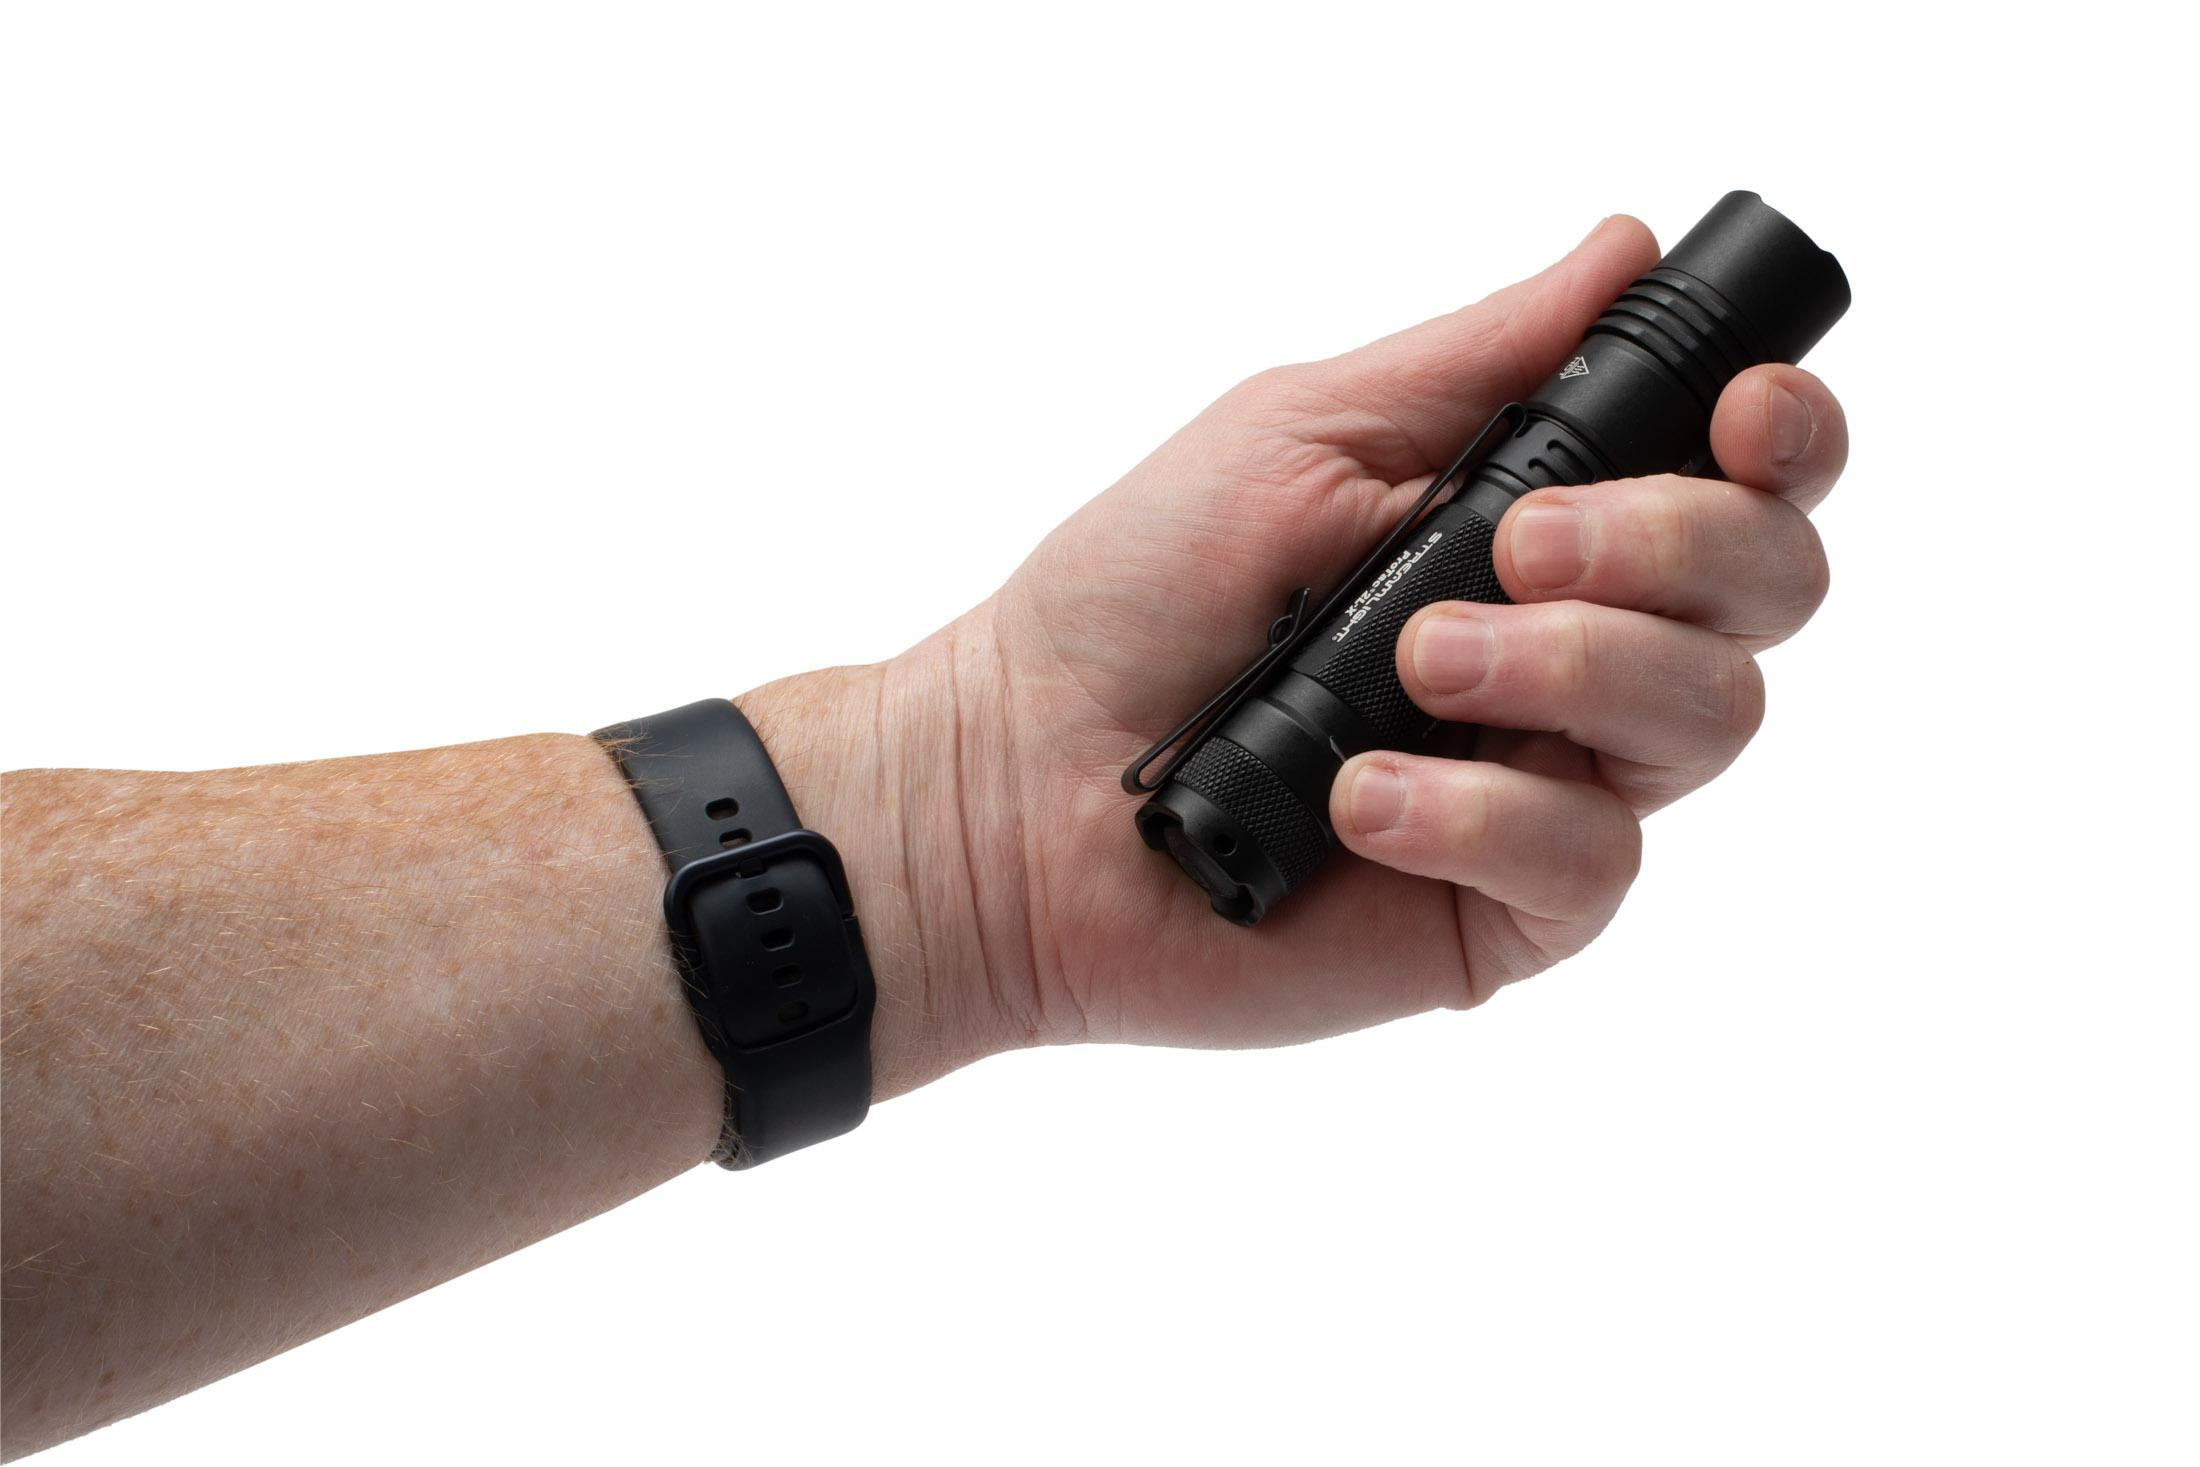 The Streamlight ProTac 2L X 500 Lumen flashlight comes with a nylon case